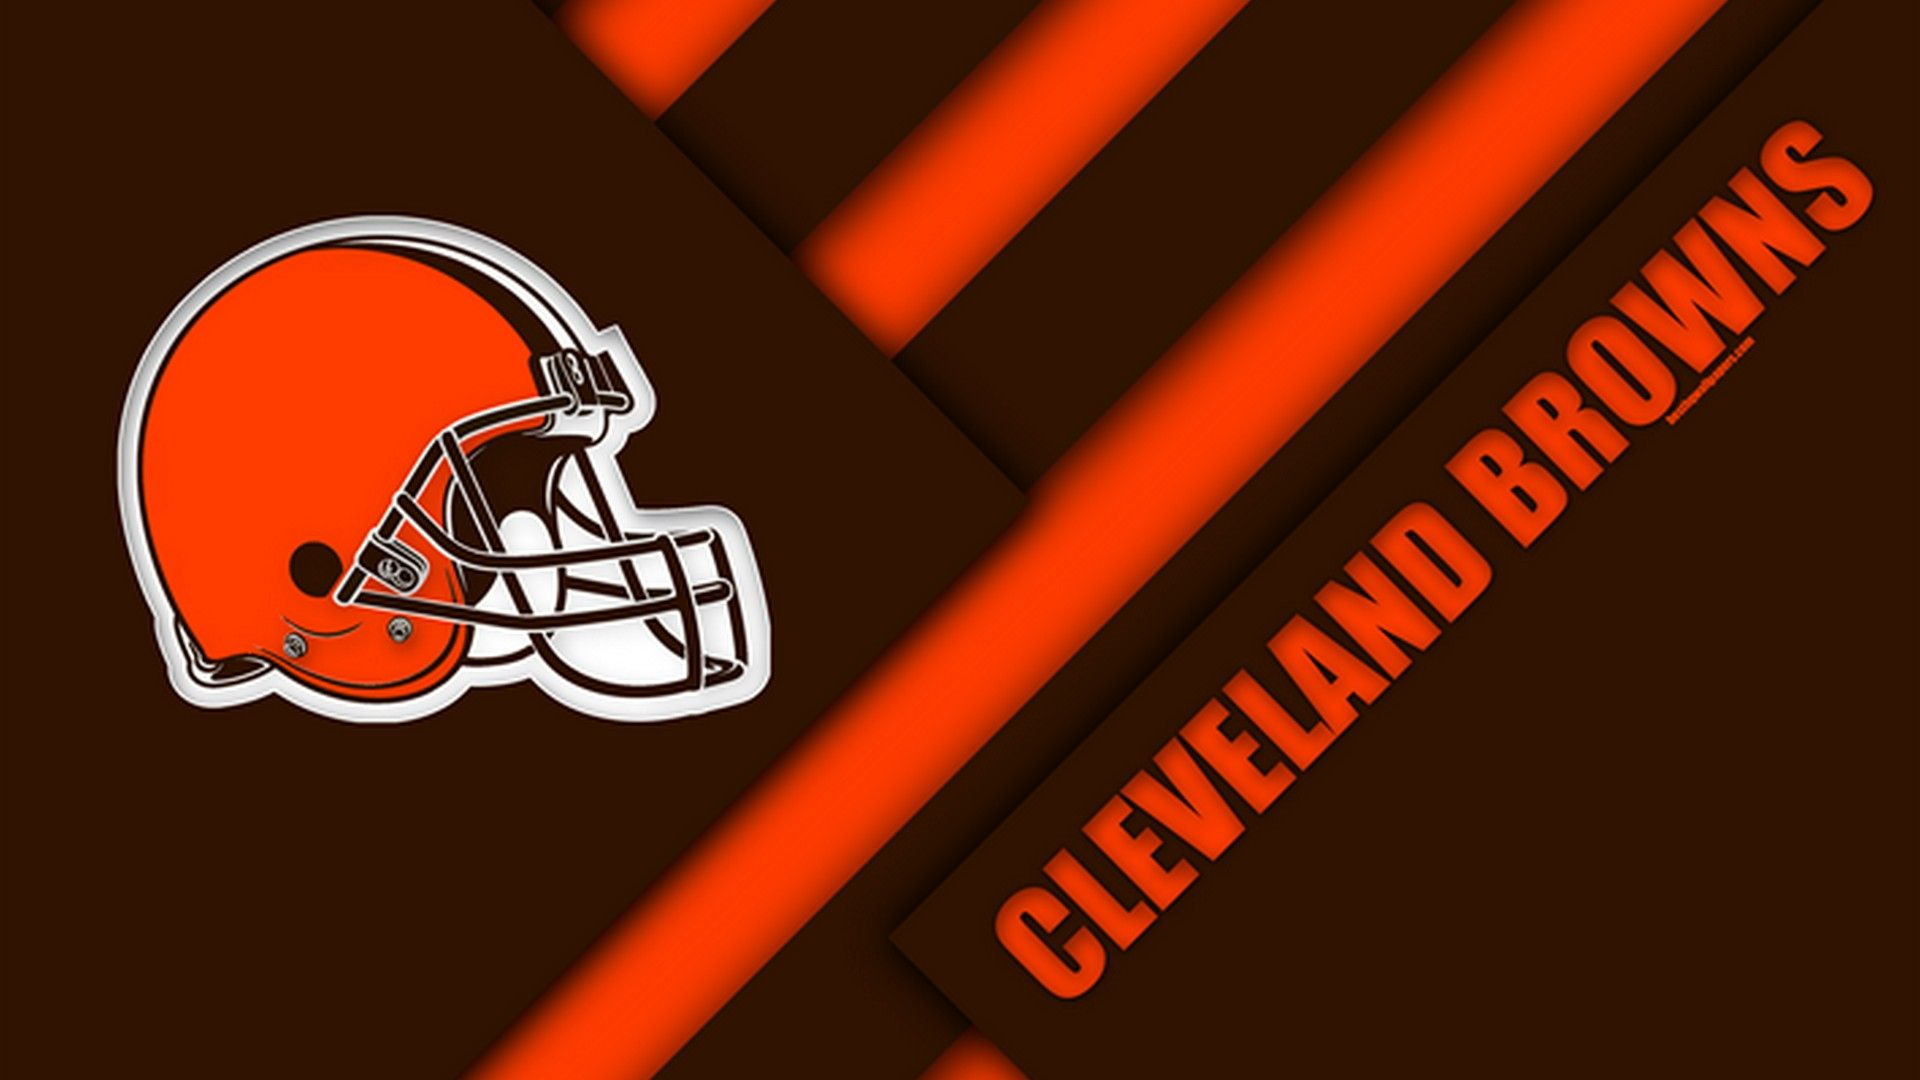 Cleveland Browns Desktop Wallpaper (With images